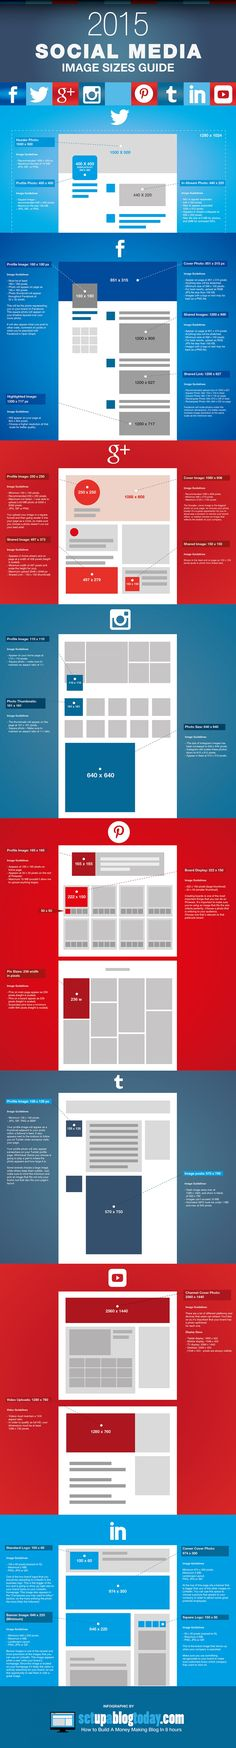 Social Media Image Size Cheat Sheet 2015 | Visual.ly